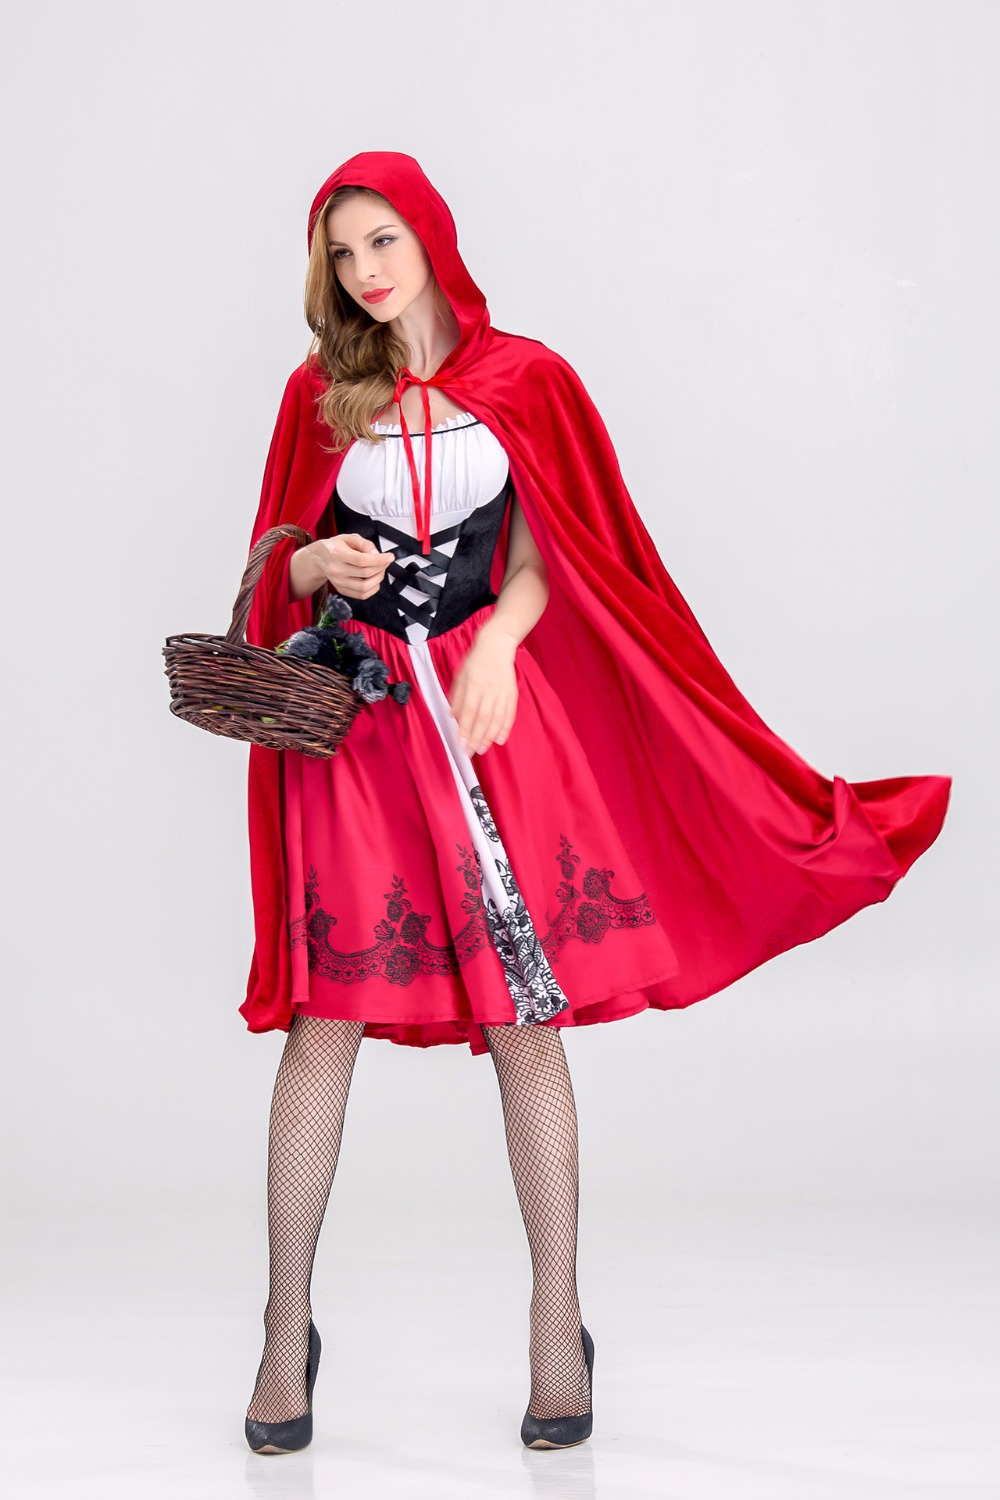 Women Little Red Riding Hood Costume Cosplay Fairy Tale Fancy Dress Halloween